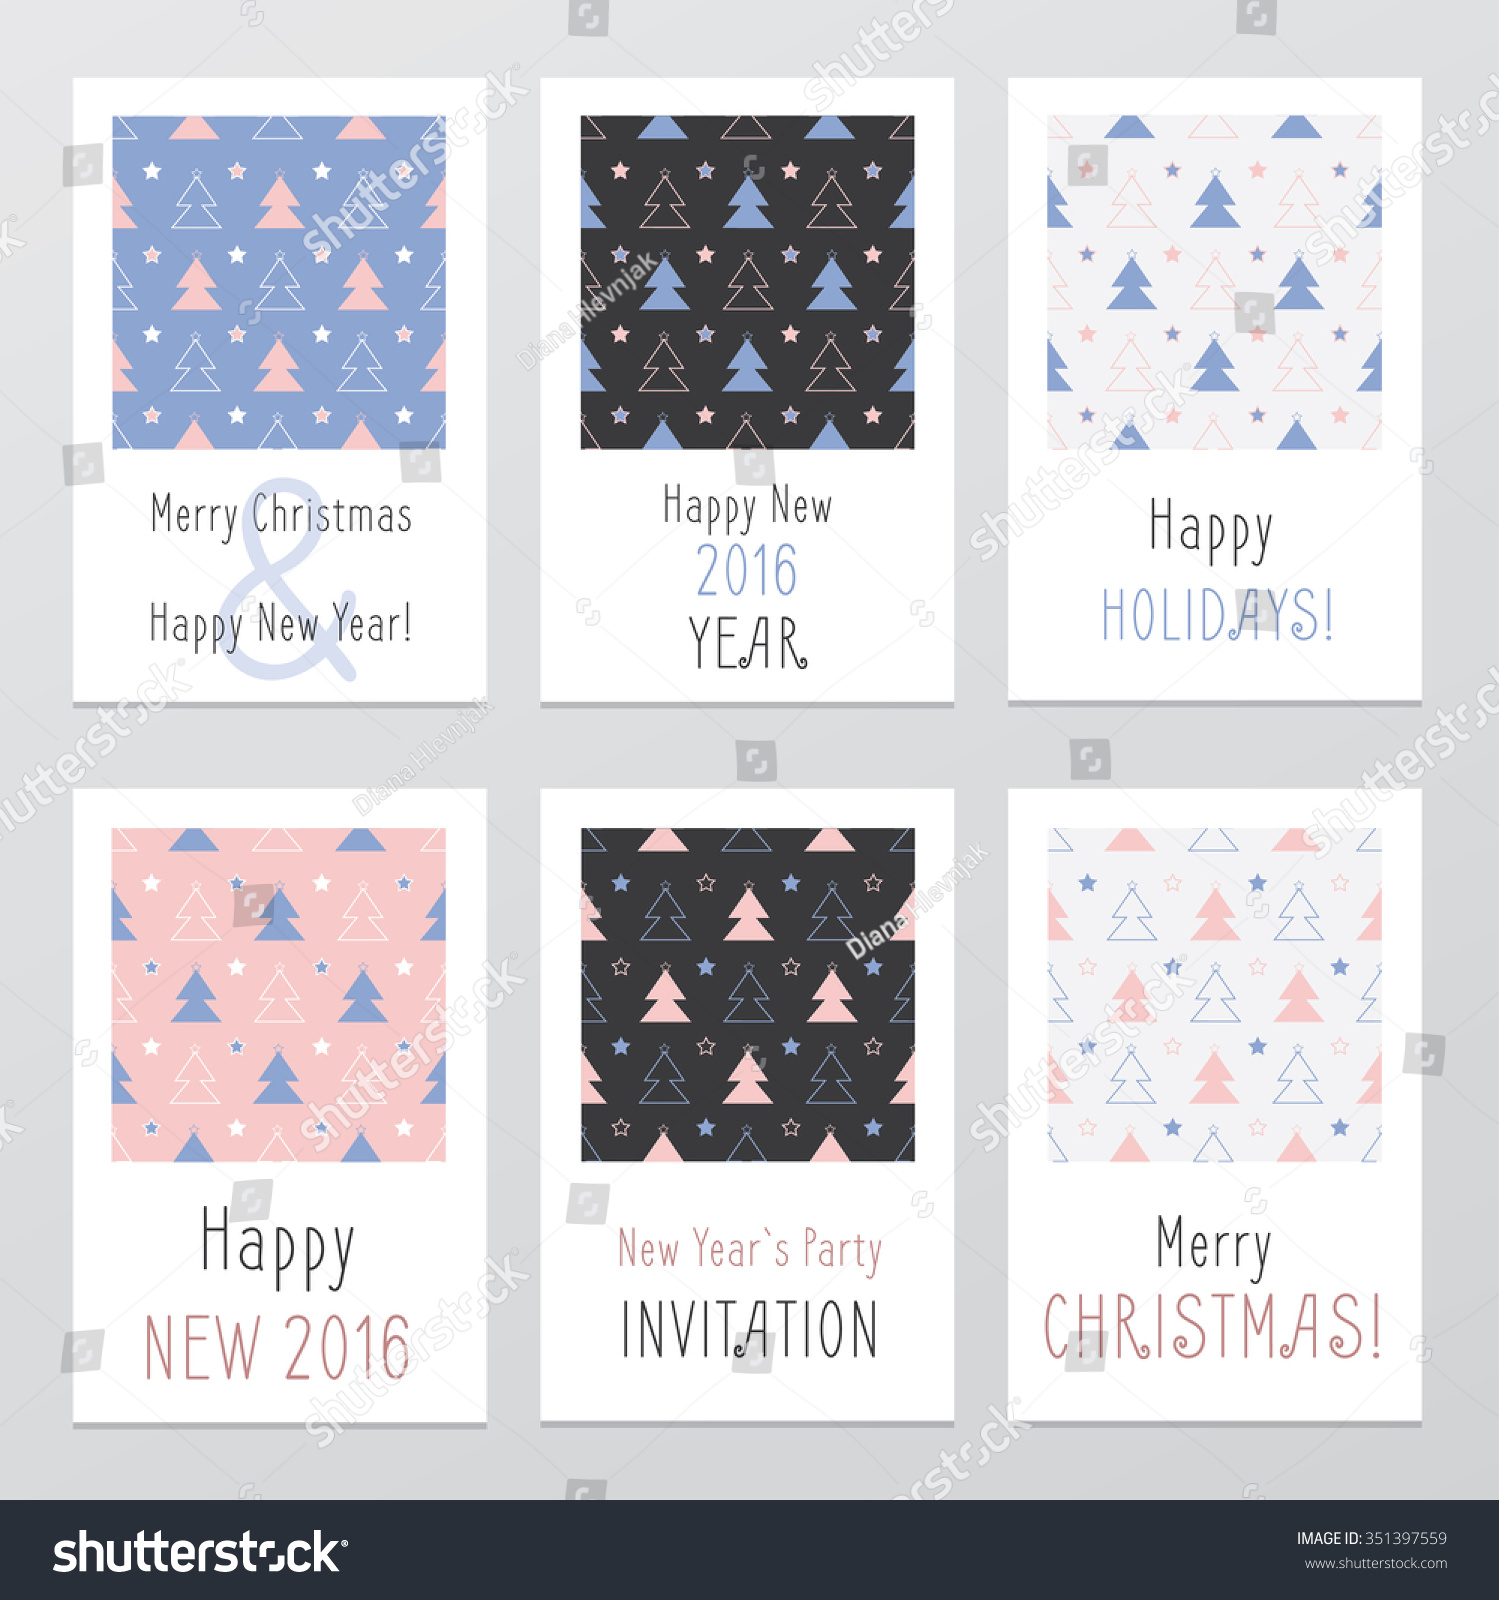 Pantone Christmas Ornaments Beautiful Handwritten Christmas Cards Seamless Pattern Stock